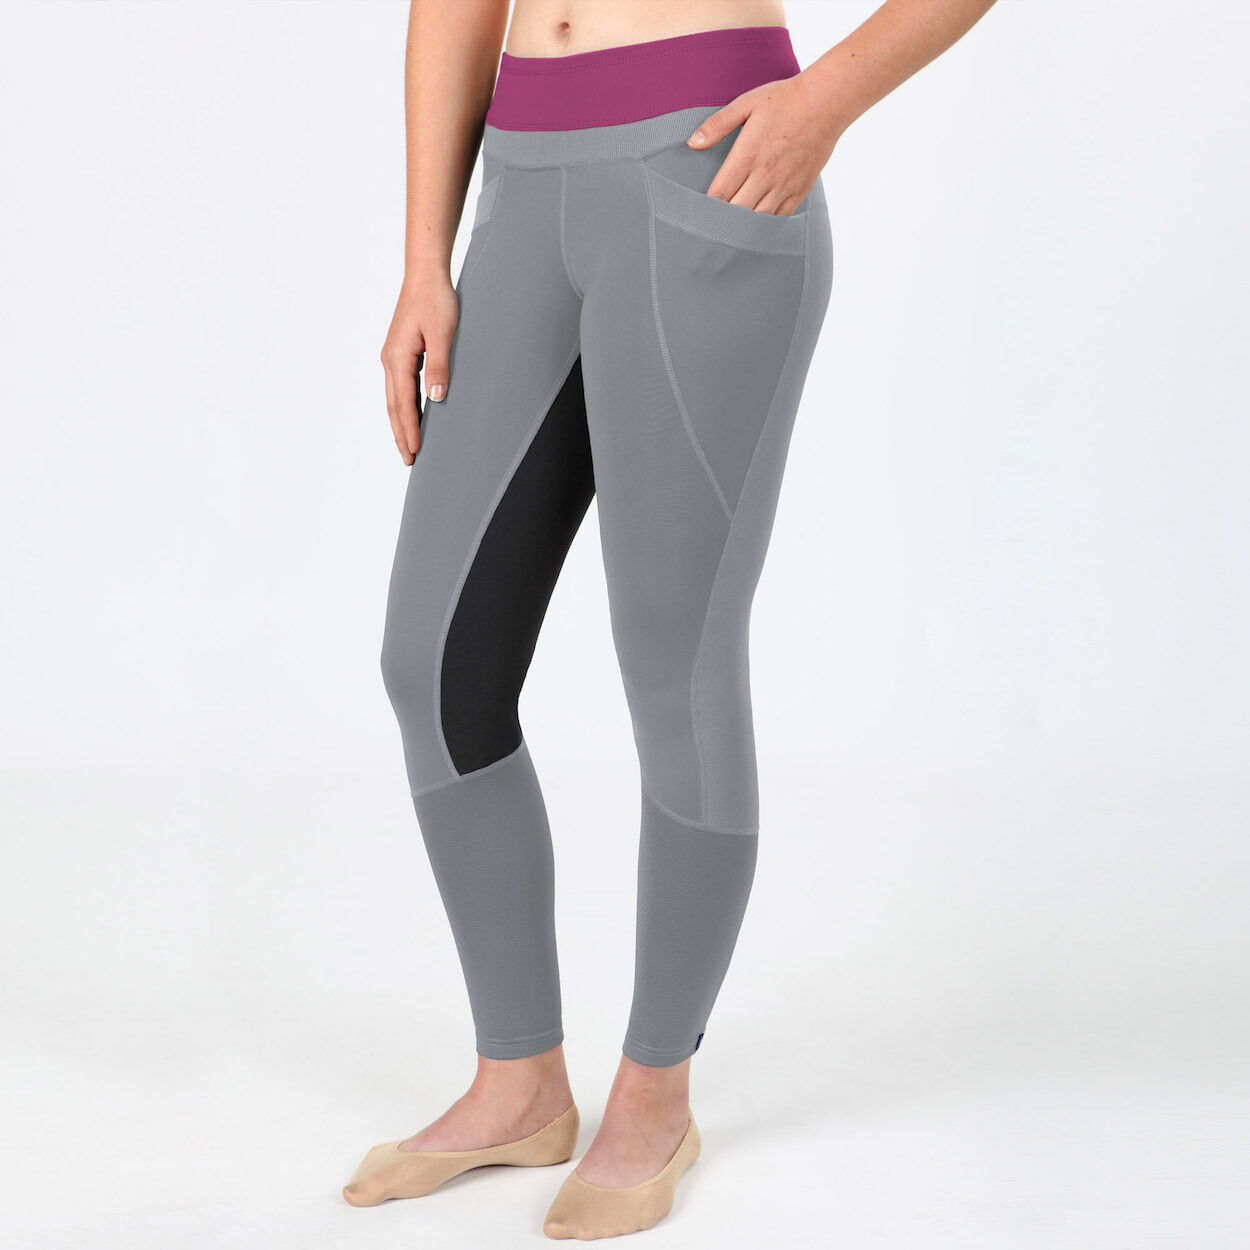 Irideon Synergy Full Seat Tights-Dove Grey Raspberry-S